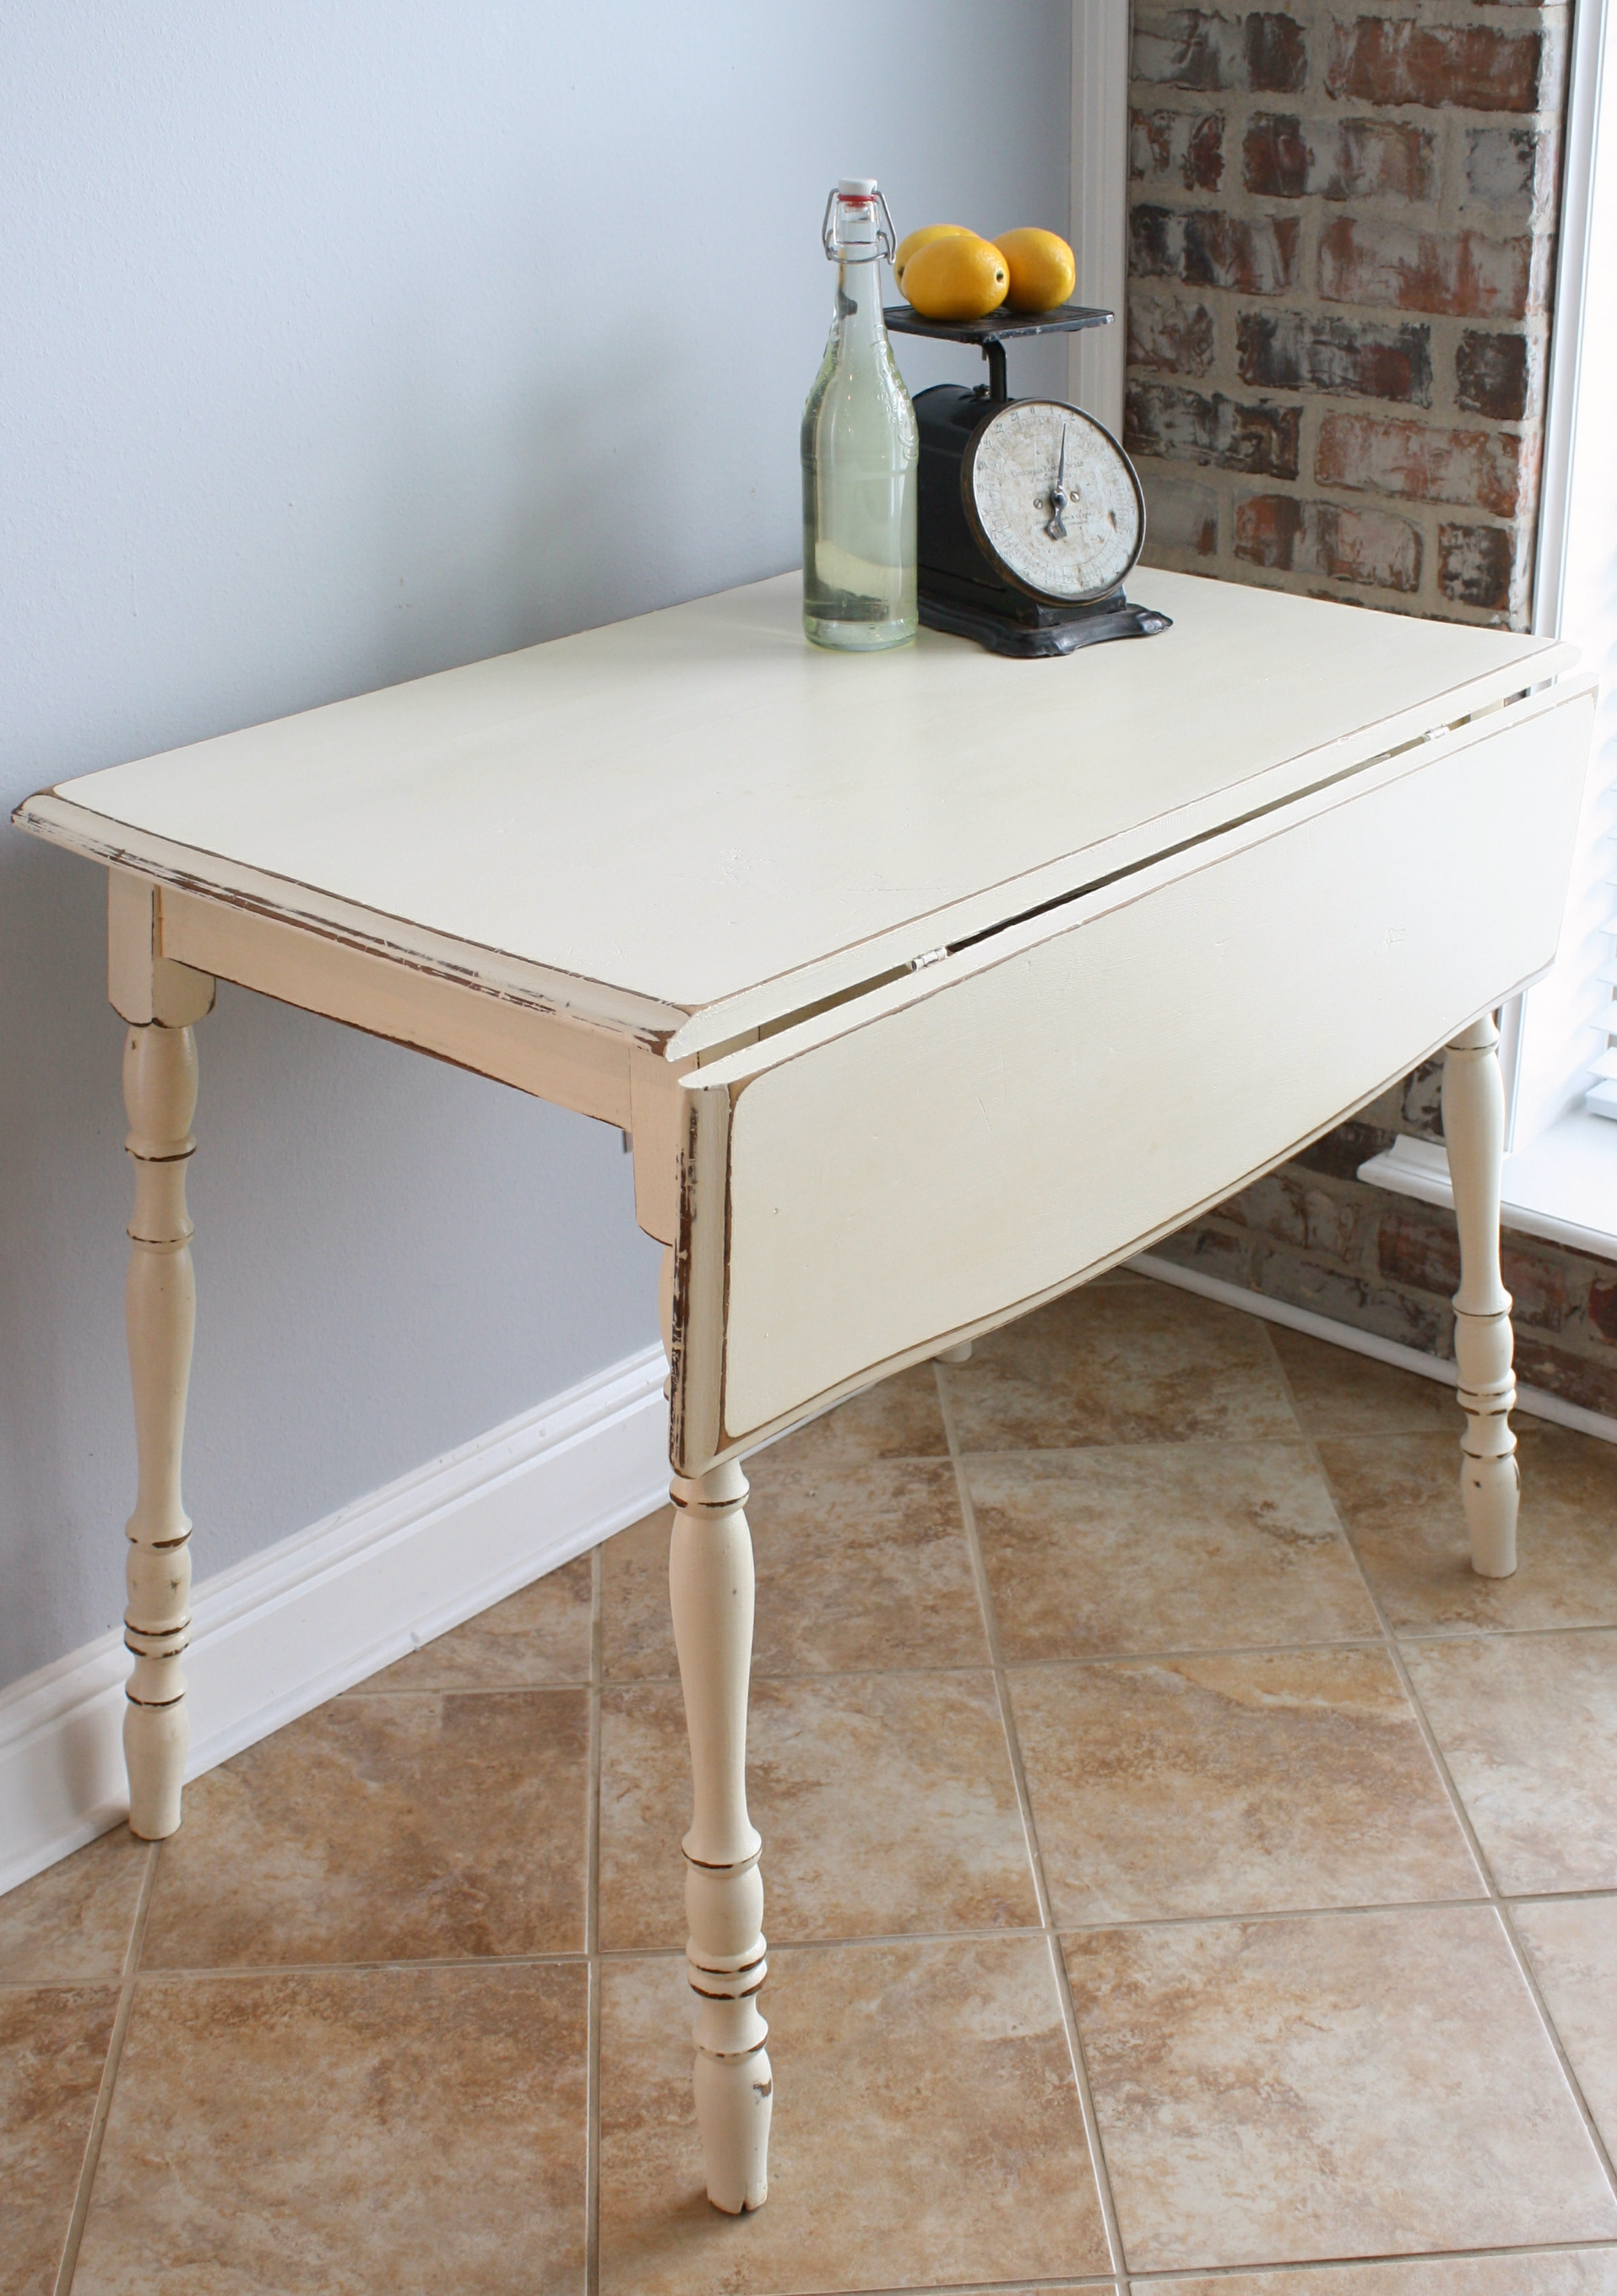 Kitchen drop leaf tables - I Hope You Enjoyed The Transformation Of My Vintage Drop Leaf Kitchen Table